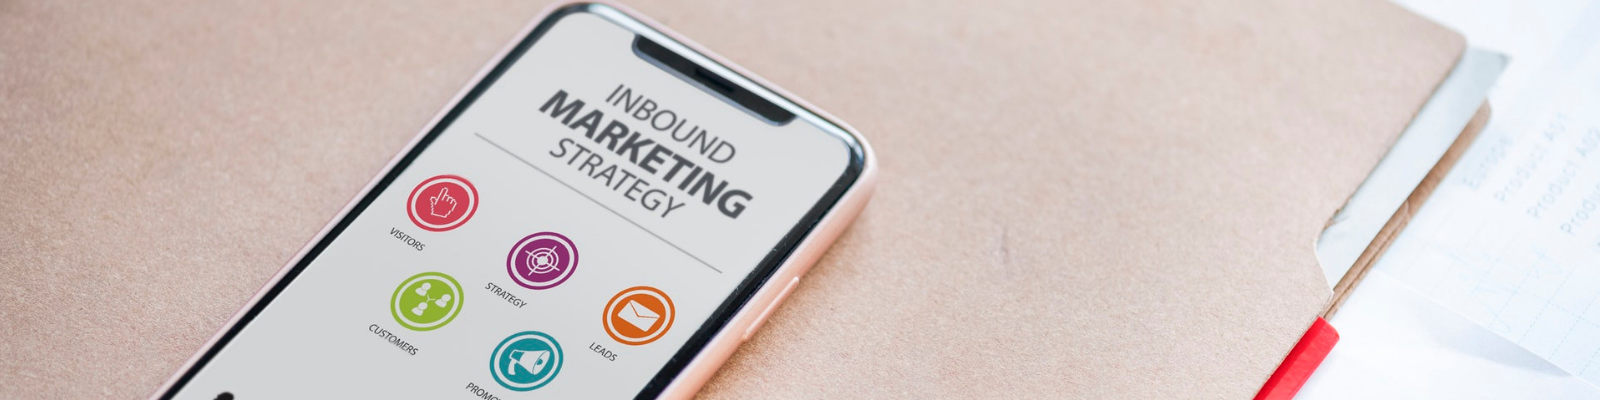 7 pasos para vender con inbound marketing